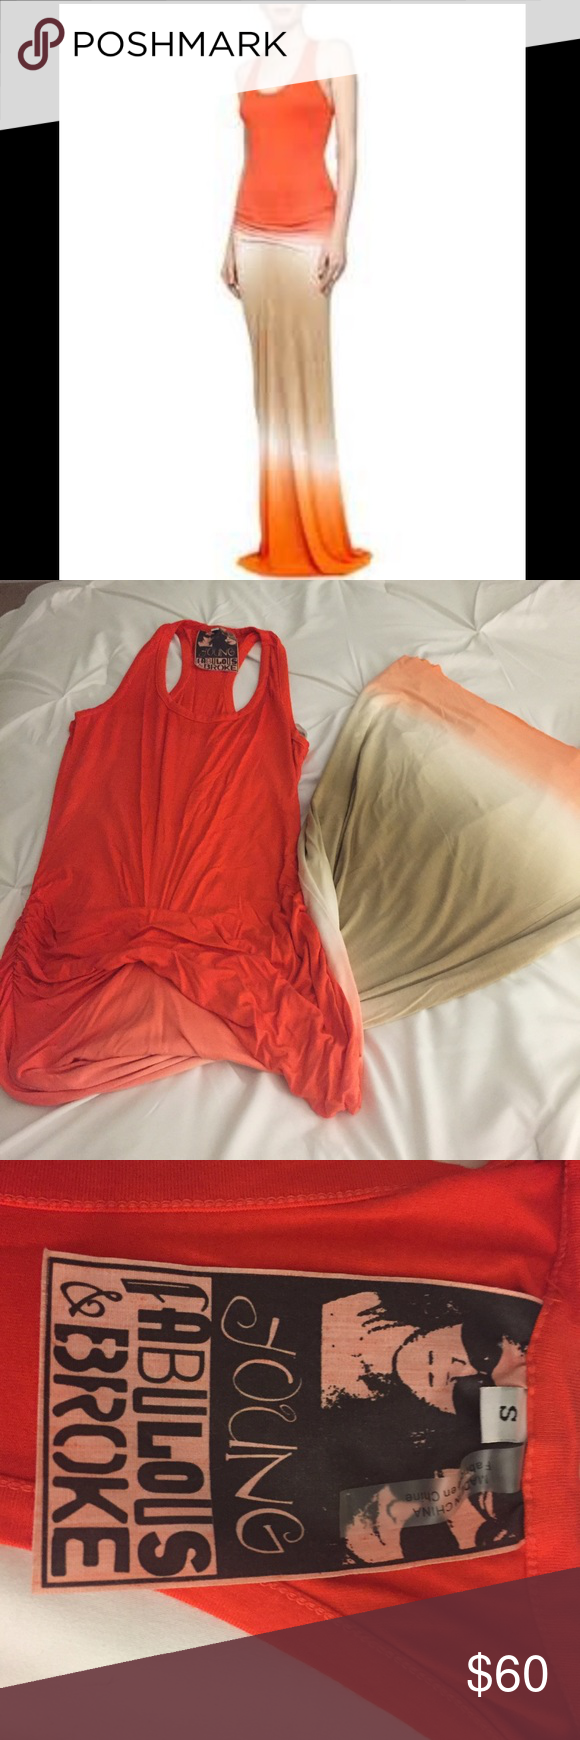 Young Fabulous & Broke Hamptons Ombré Maxi Dress S Young Fabulous & Broke Hamptons Ombré Maxi Dress in size small.  Racer back tank, gathers in front.  Dress goes from orange to tan to orange.  Young Fabulous and Broke clothing have raw hem, meaning you cut the material.  The dress was already cut, suggest to fit height of 5'4 or shorter. Young Fabulous & Broke Dresses Maxi